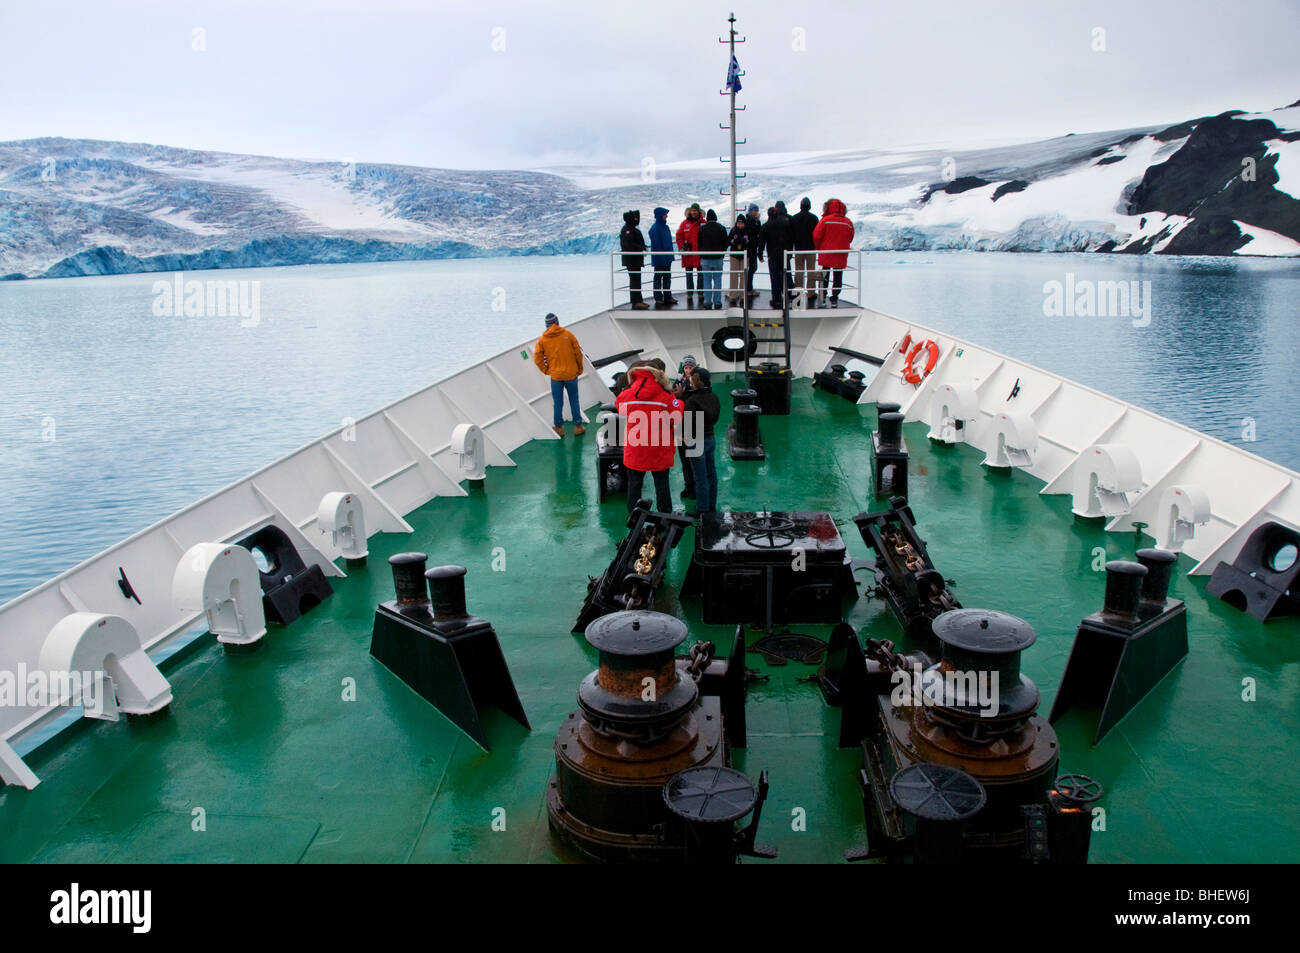 Tourists on an expedition boat as it approaches King George Island off the Antarctic Peninsula - Stock Image